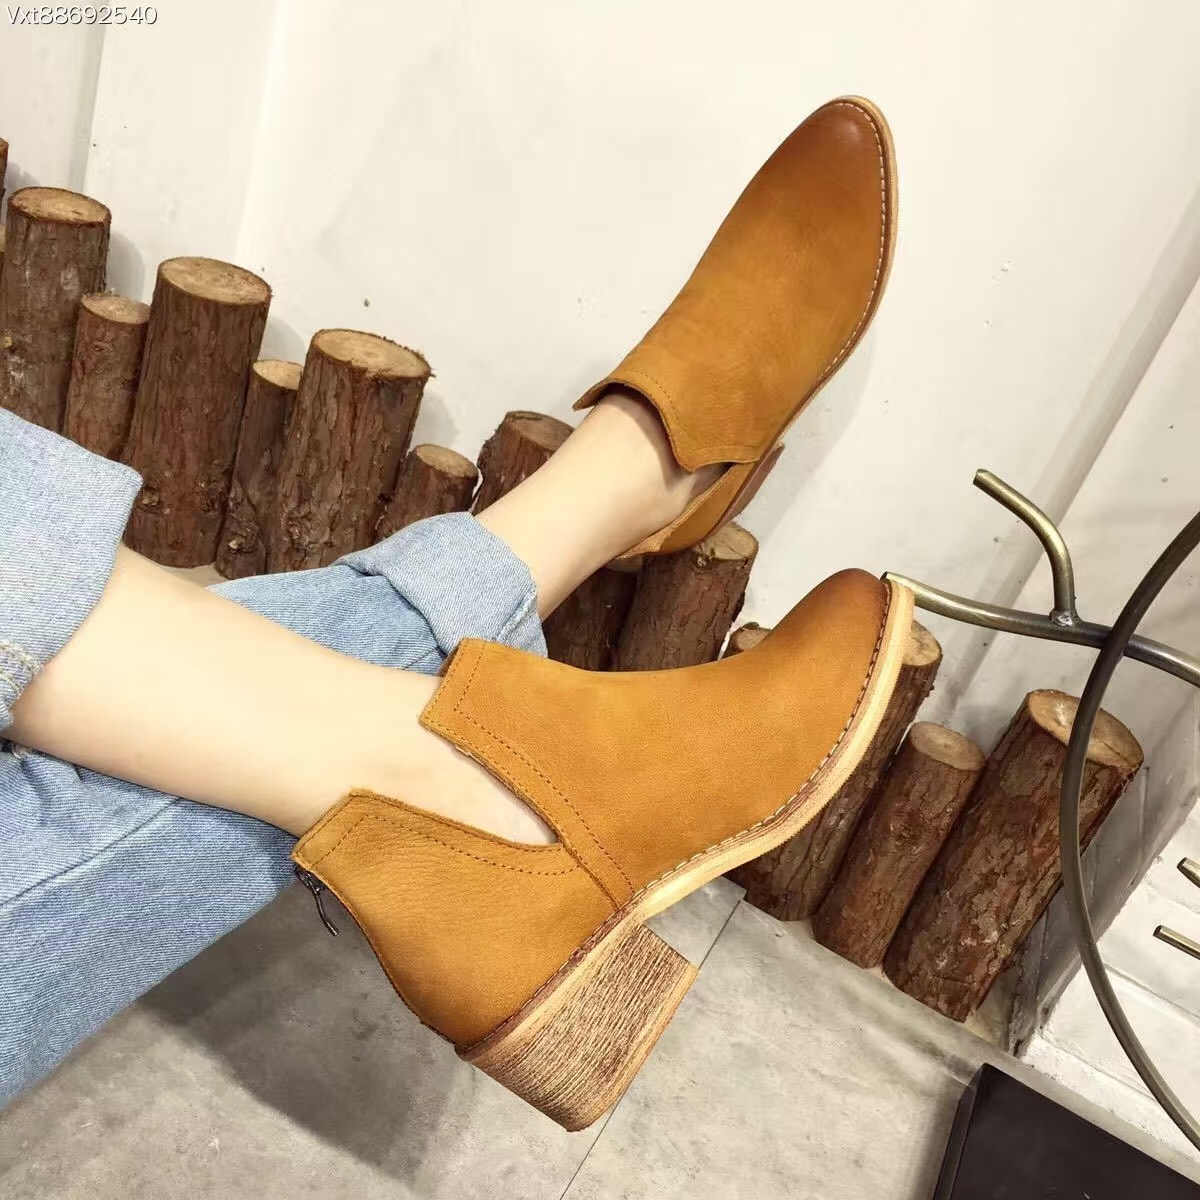 ФОТО 2016 New Arrival Fashion Women's Ankle Boots Genuine Leather Thick High Heel Winter Shoes 6cm Botines Mujer Yellow Botte Femme